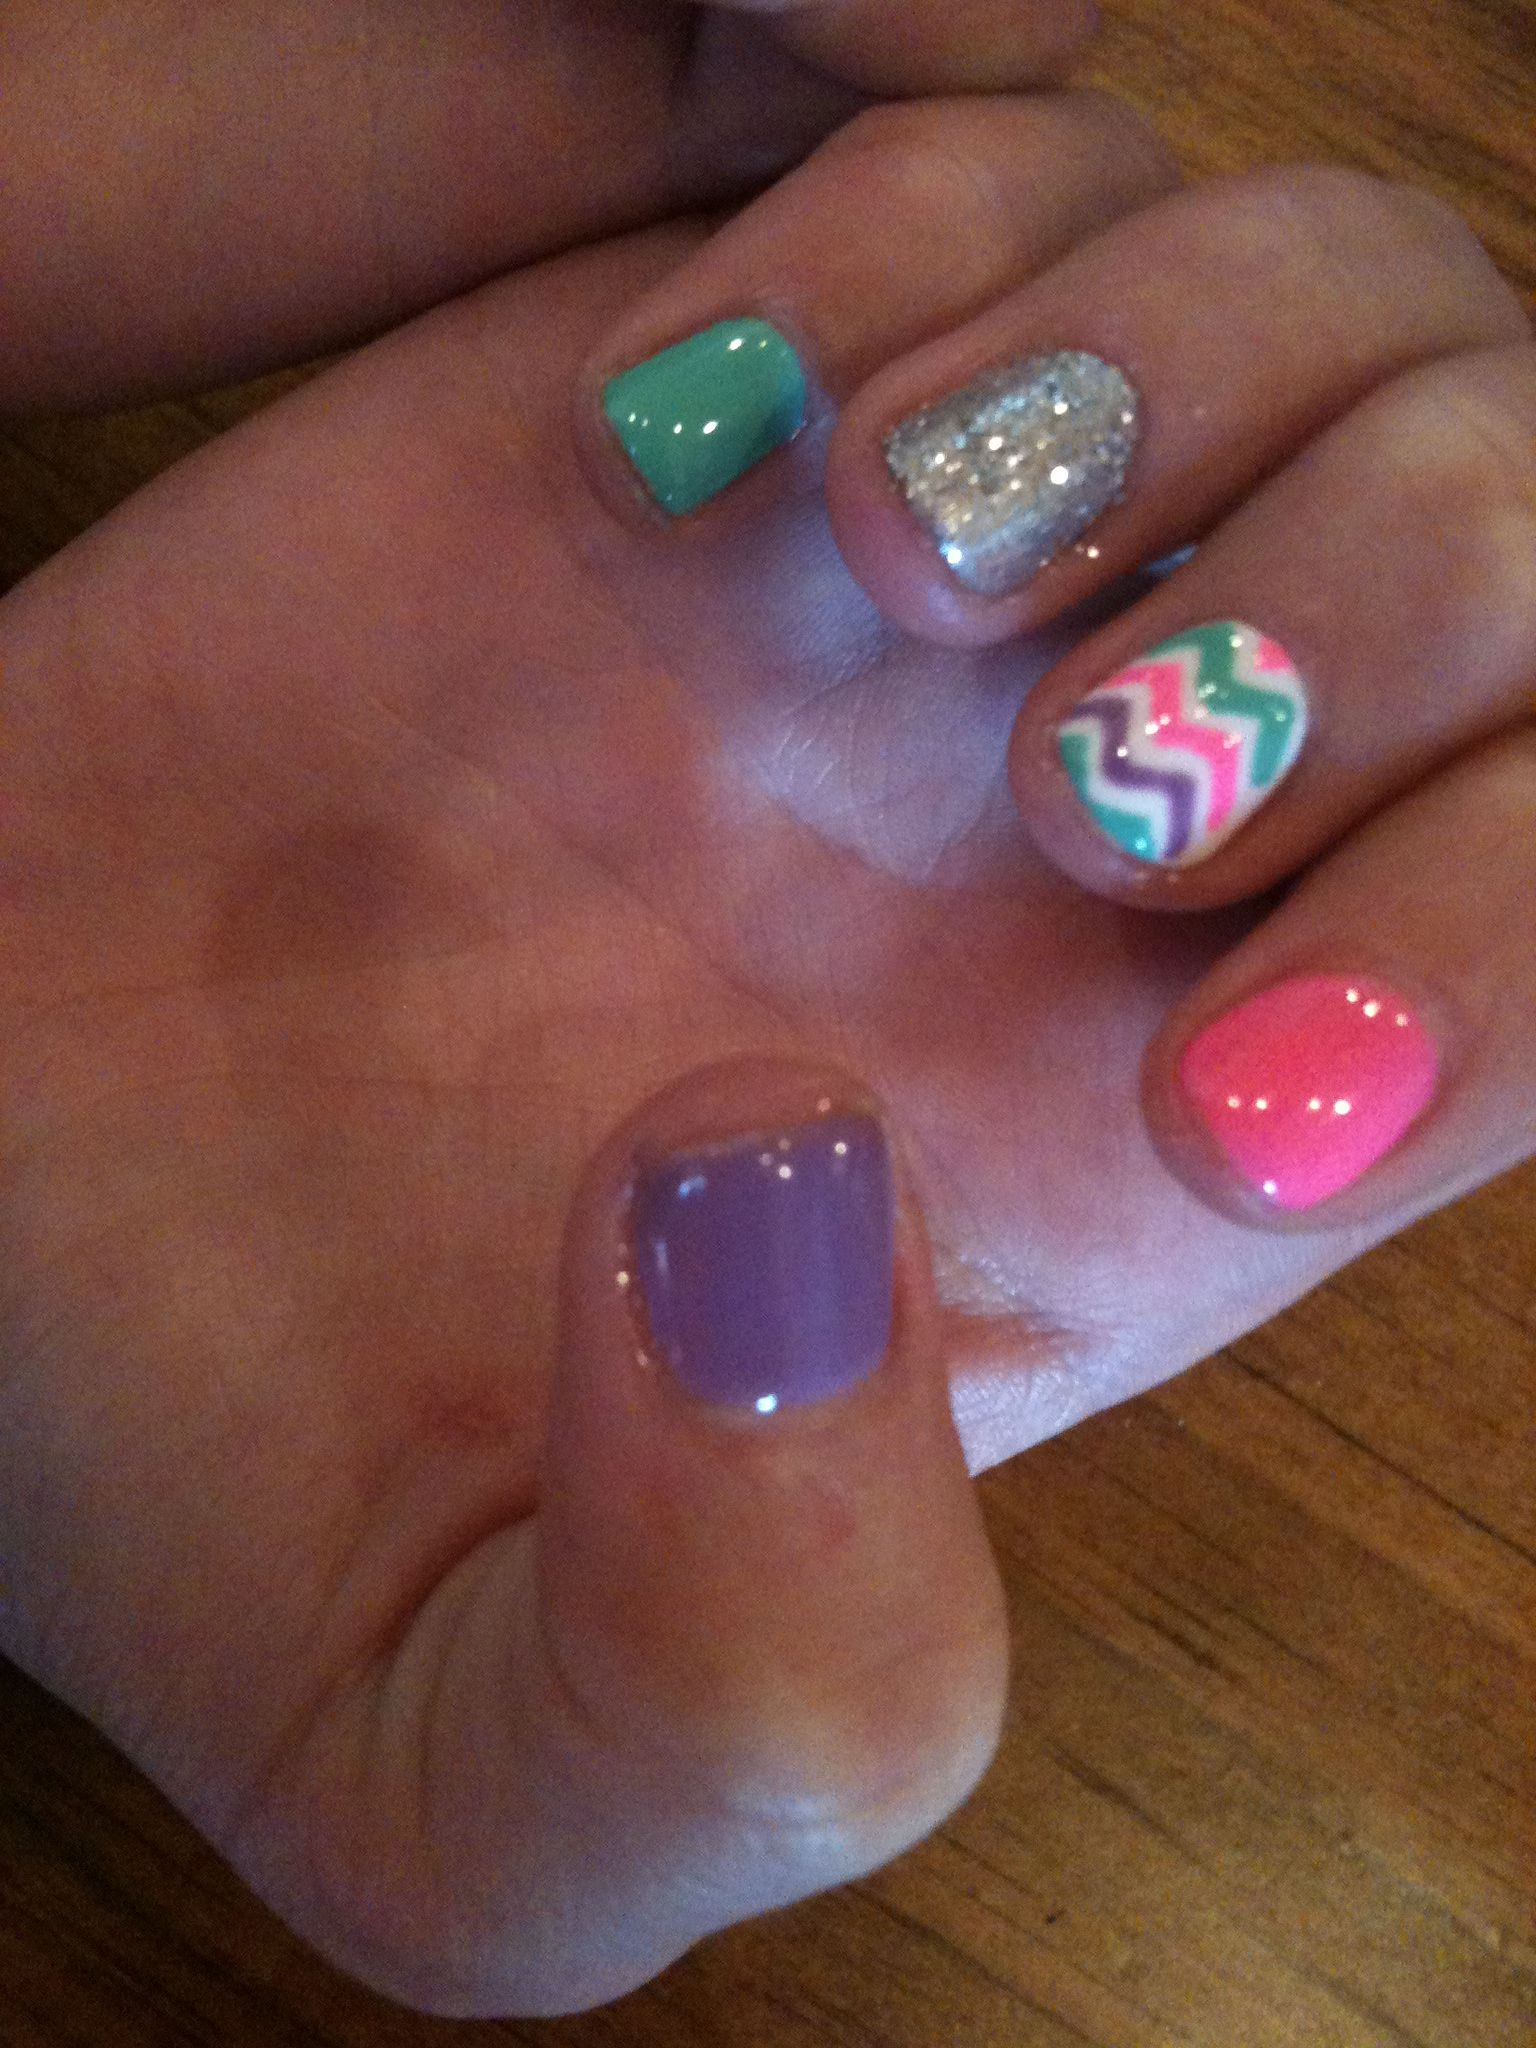 Cute Chevron Nails just wish I could go get them done right now ...